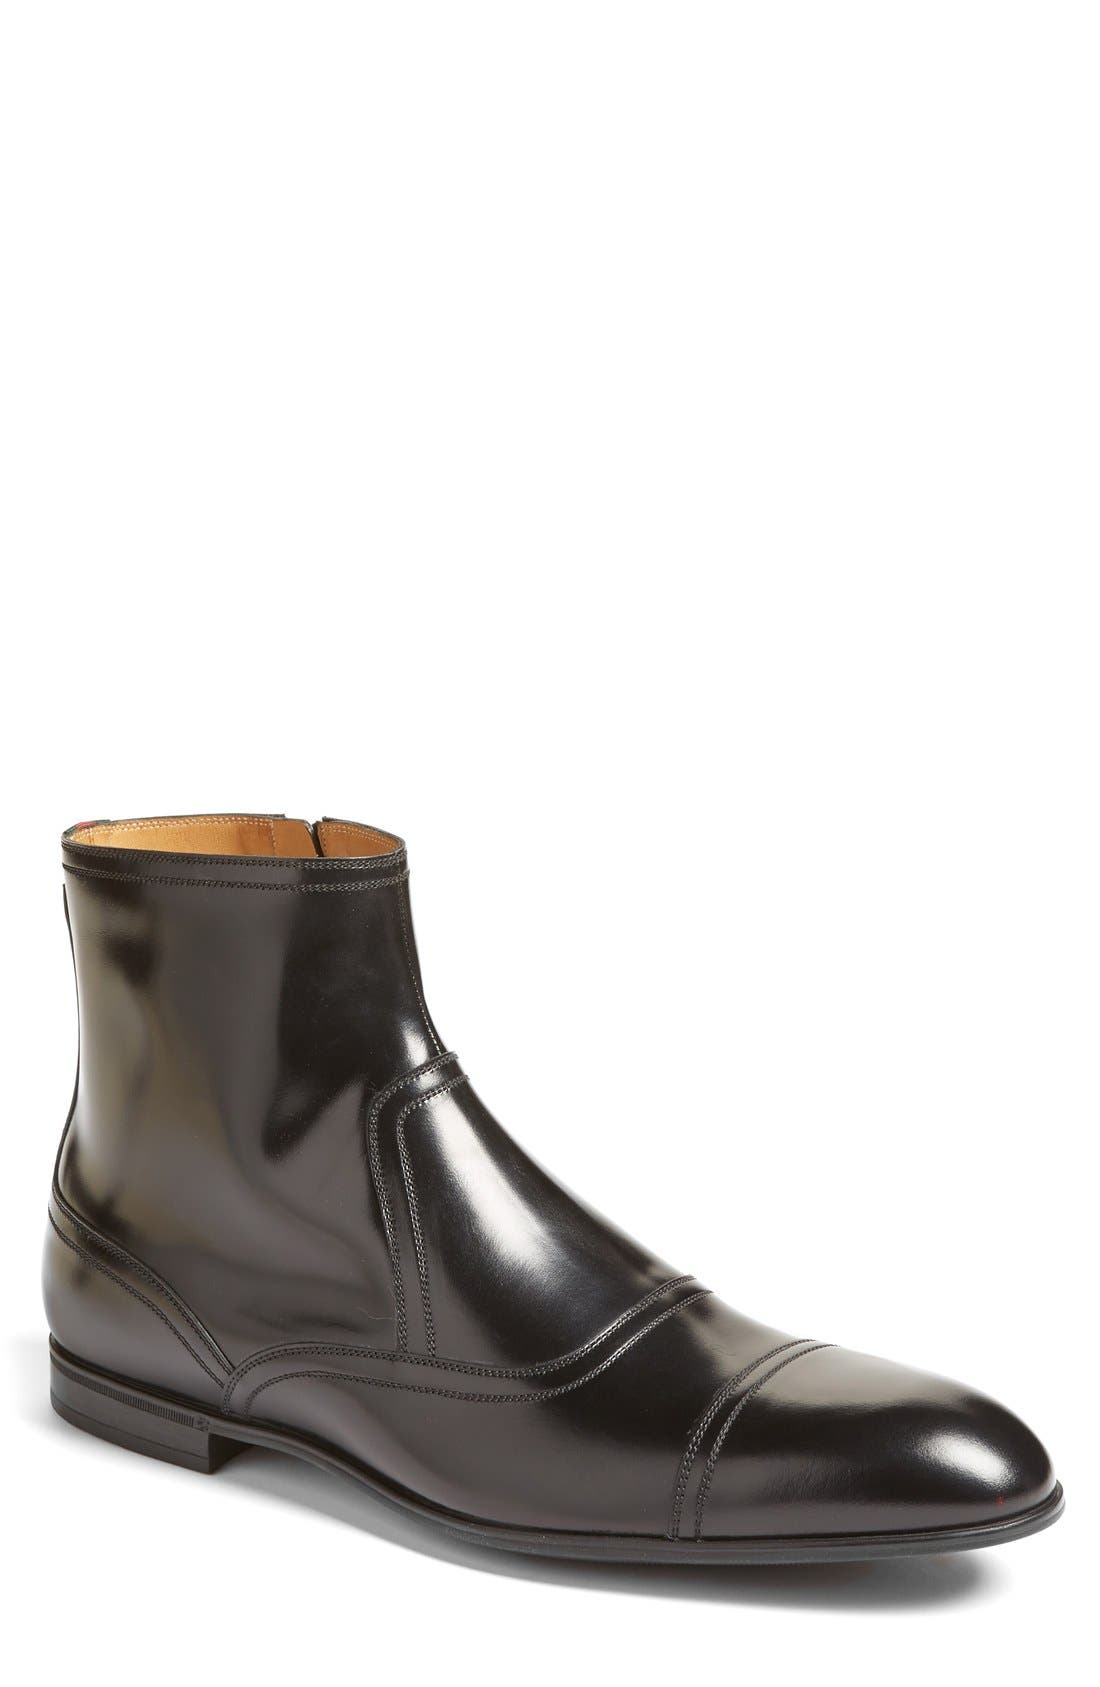 Ravello Zip Boot,                         Main,                         color, Nero Leather